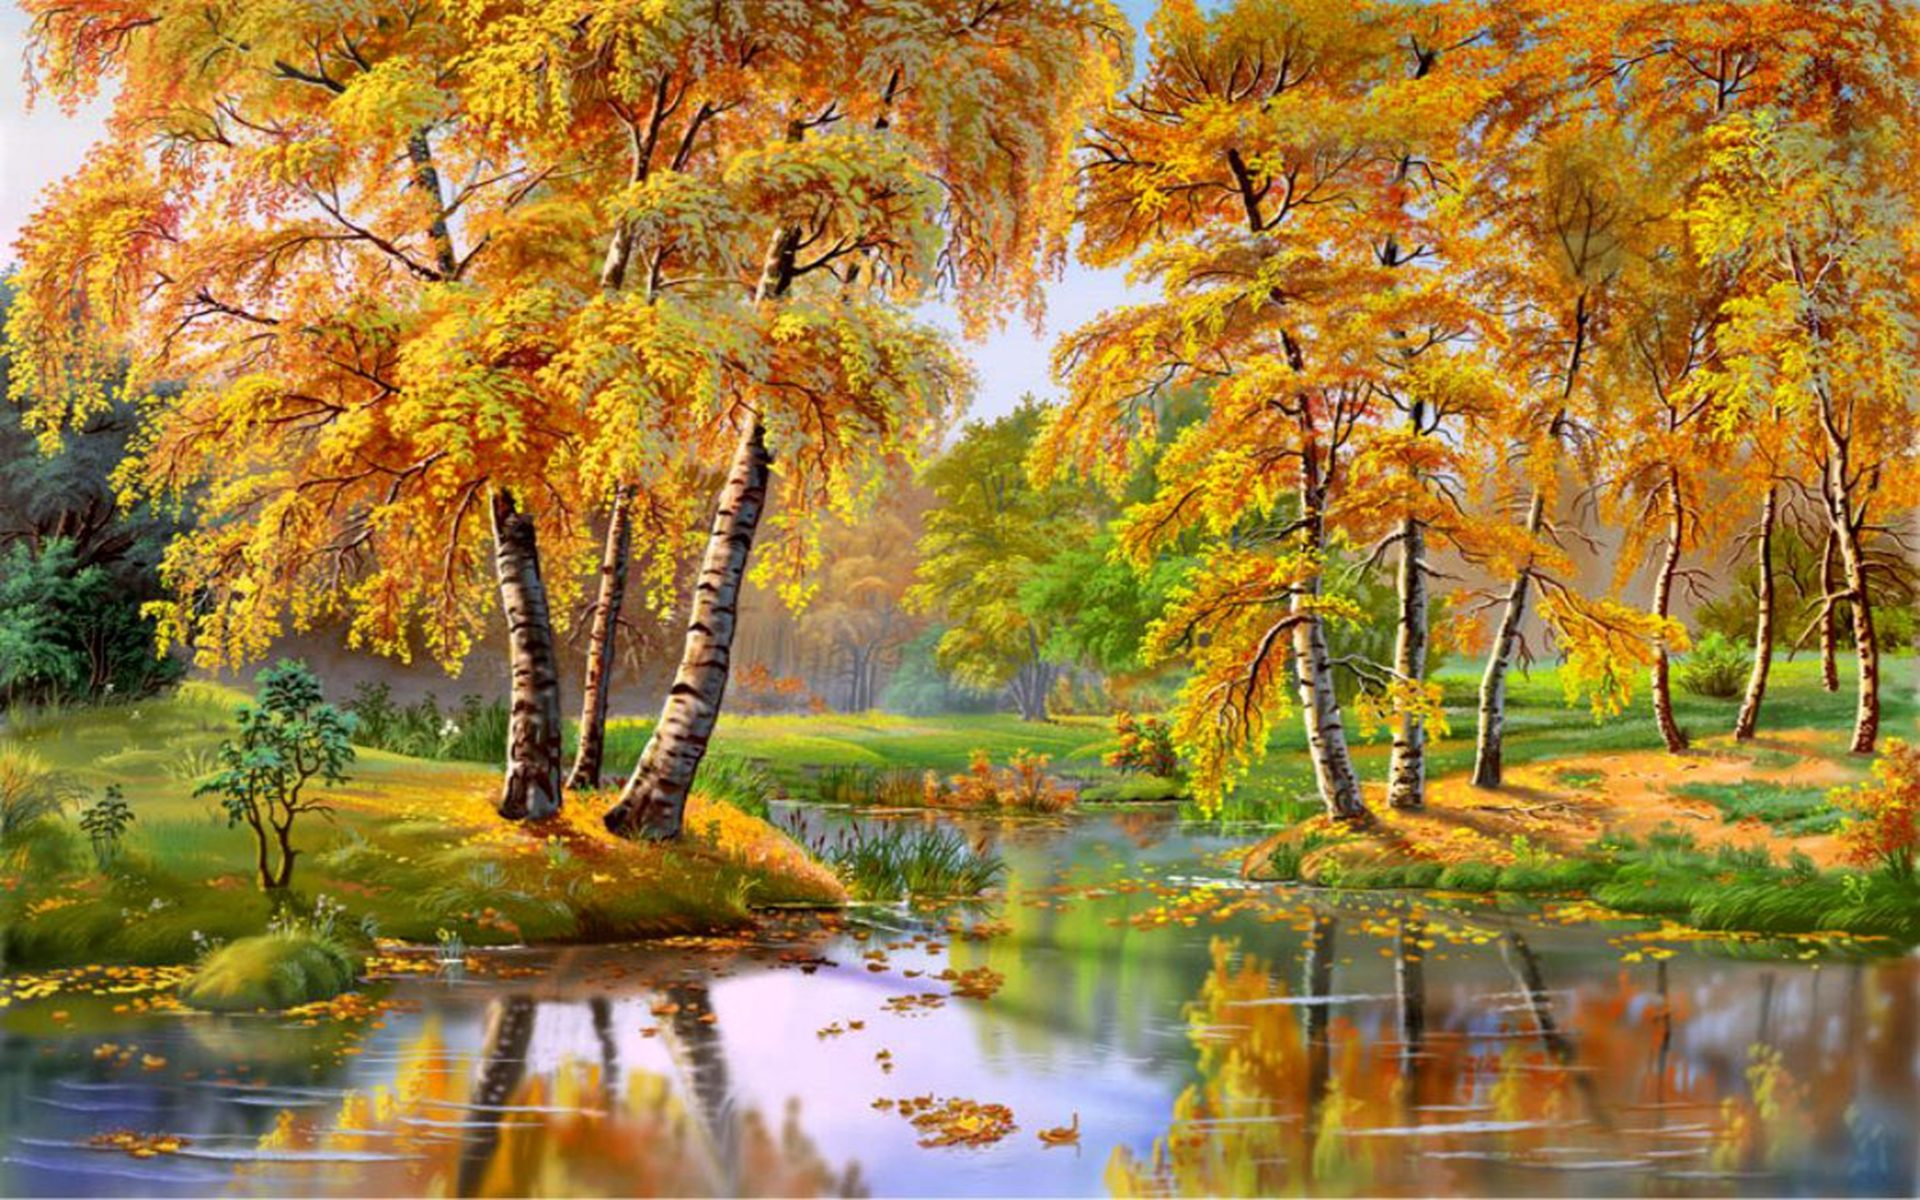 Riverside Girl Fantasy Hd Wallpaper Wonderful Autumn Landscape River Trees 087537